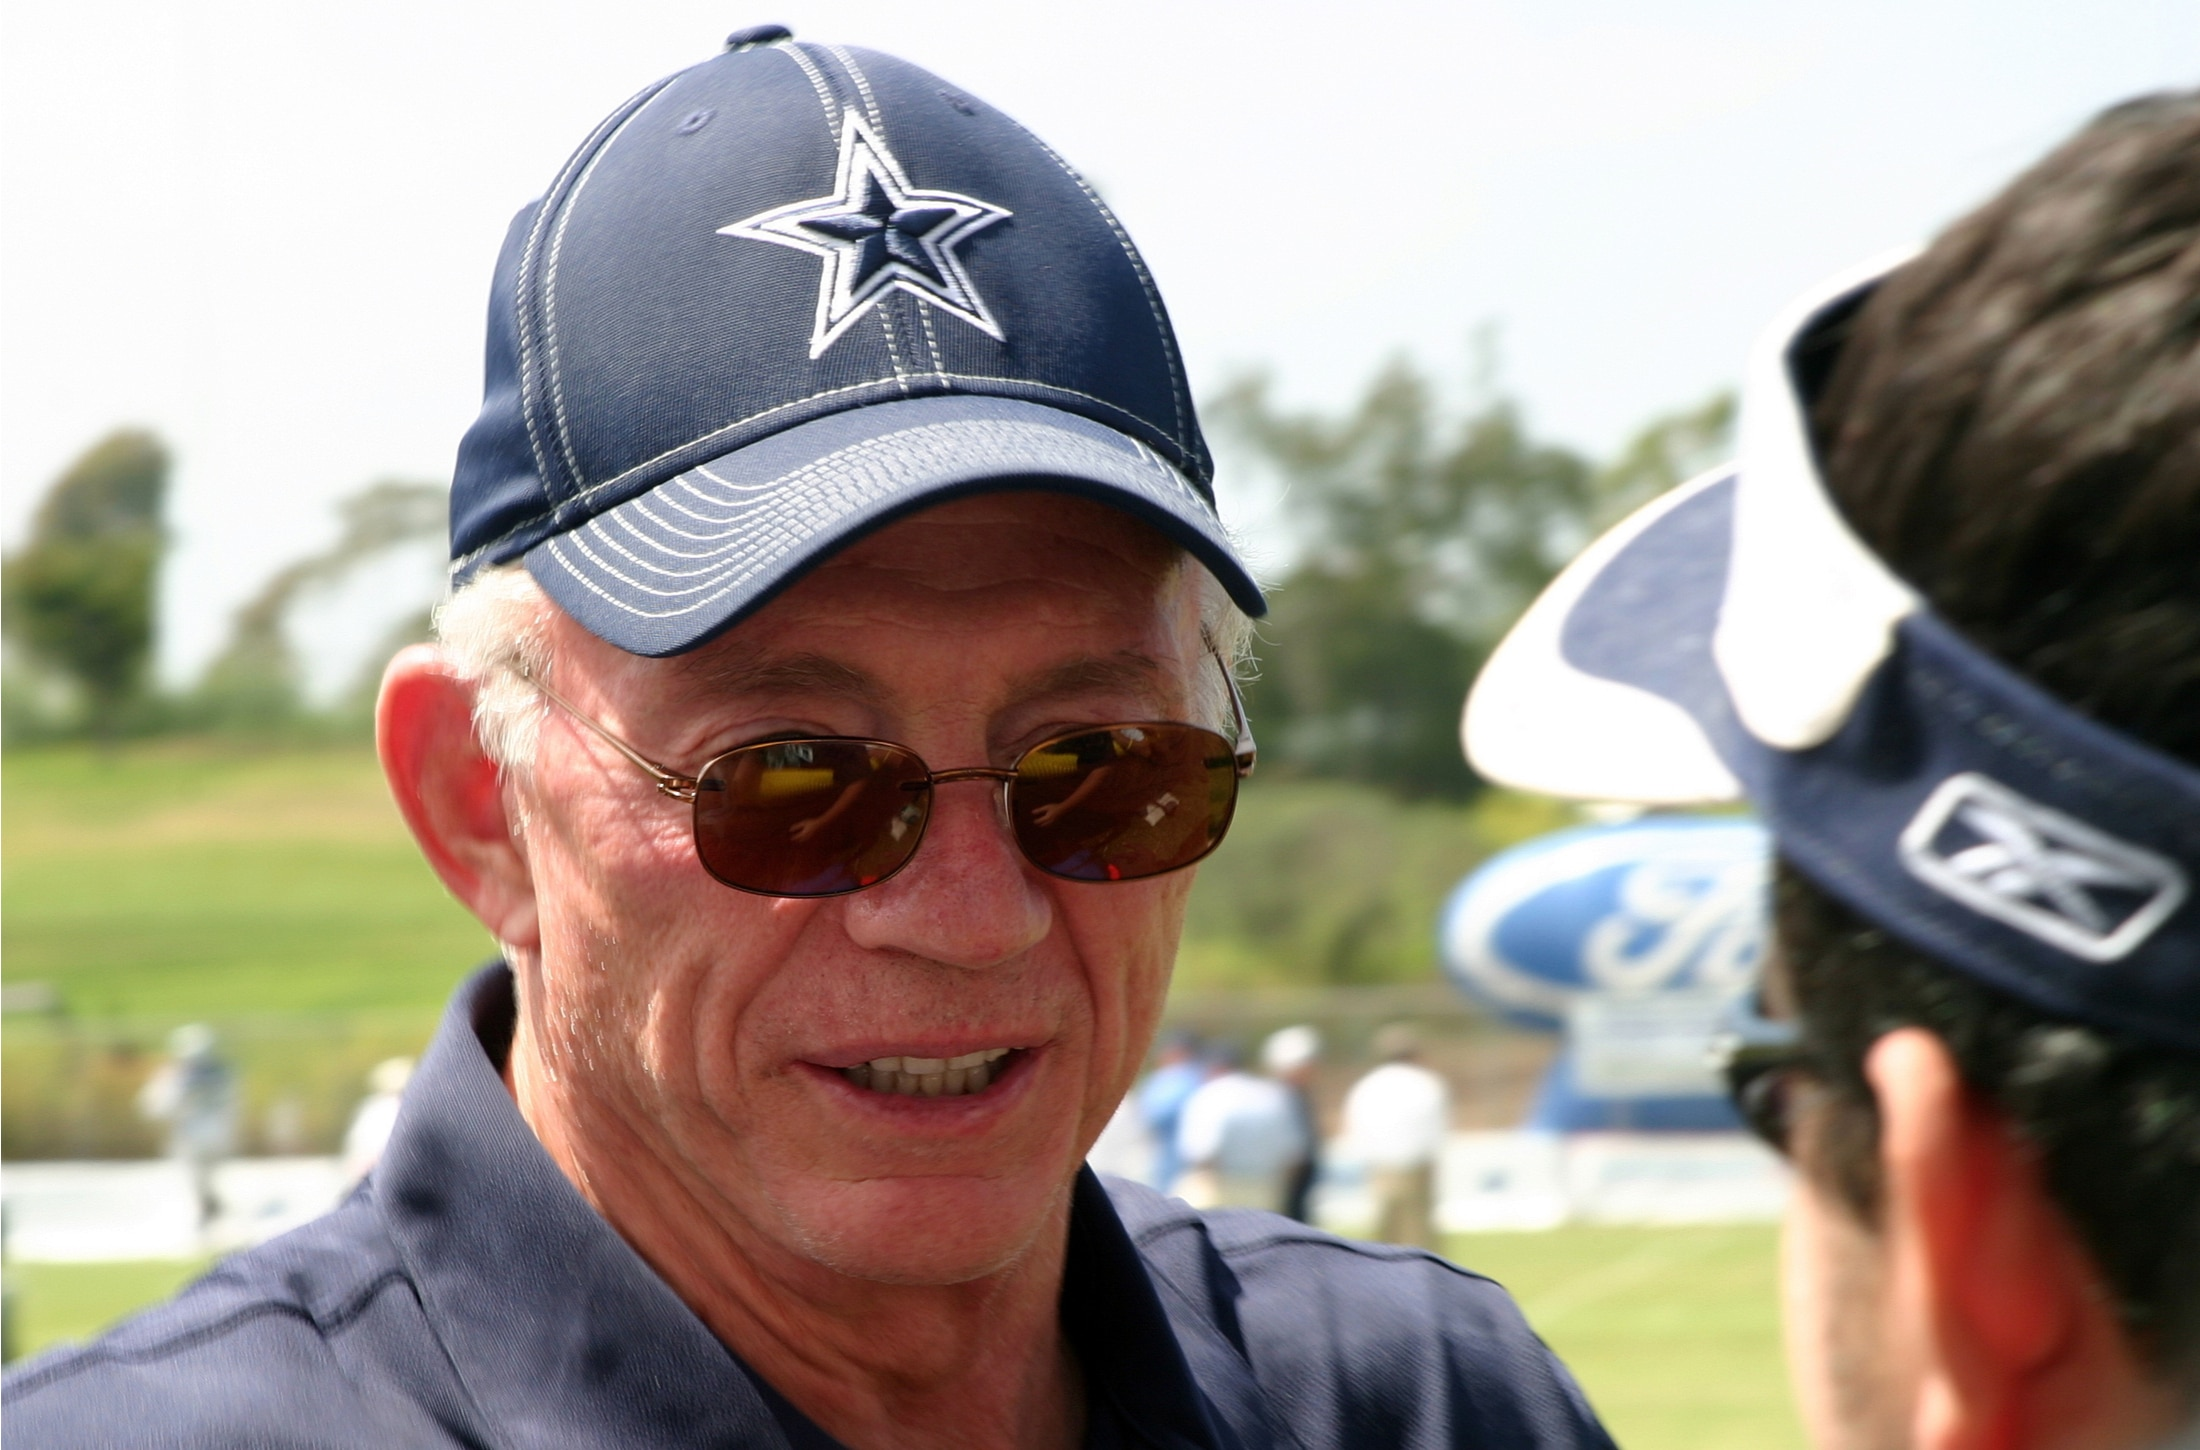 d78c3be54cba76 NFL Starts War On Owners, Bans Cowboys' Jerry Jones From Answering Anthem  Questions - 2ndVote